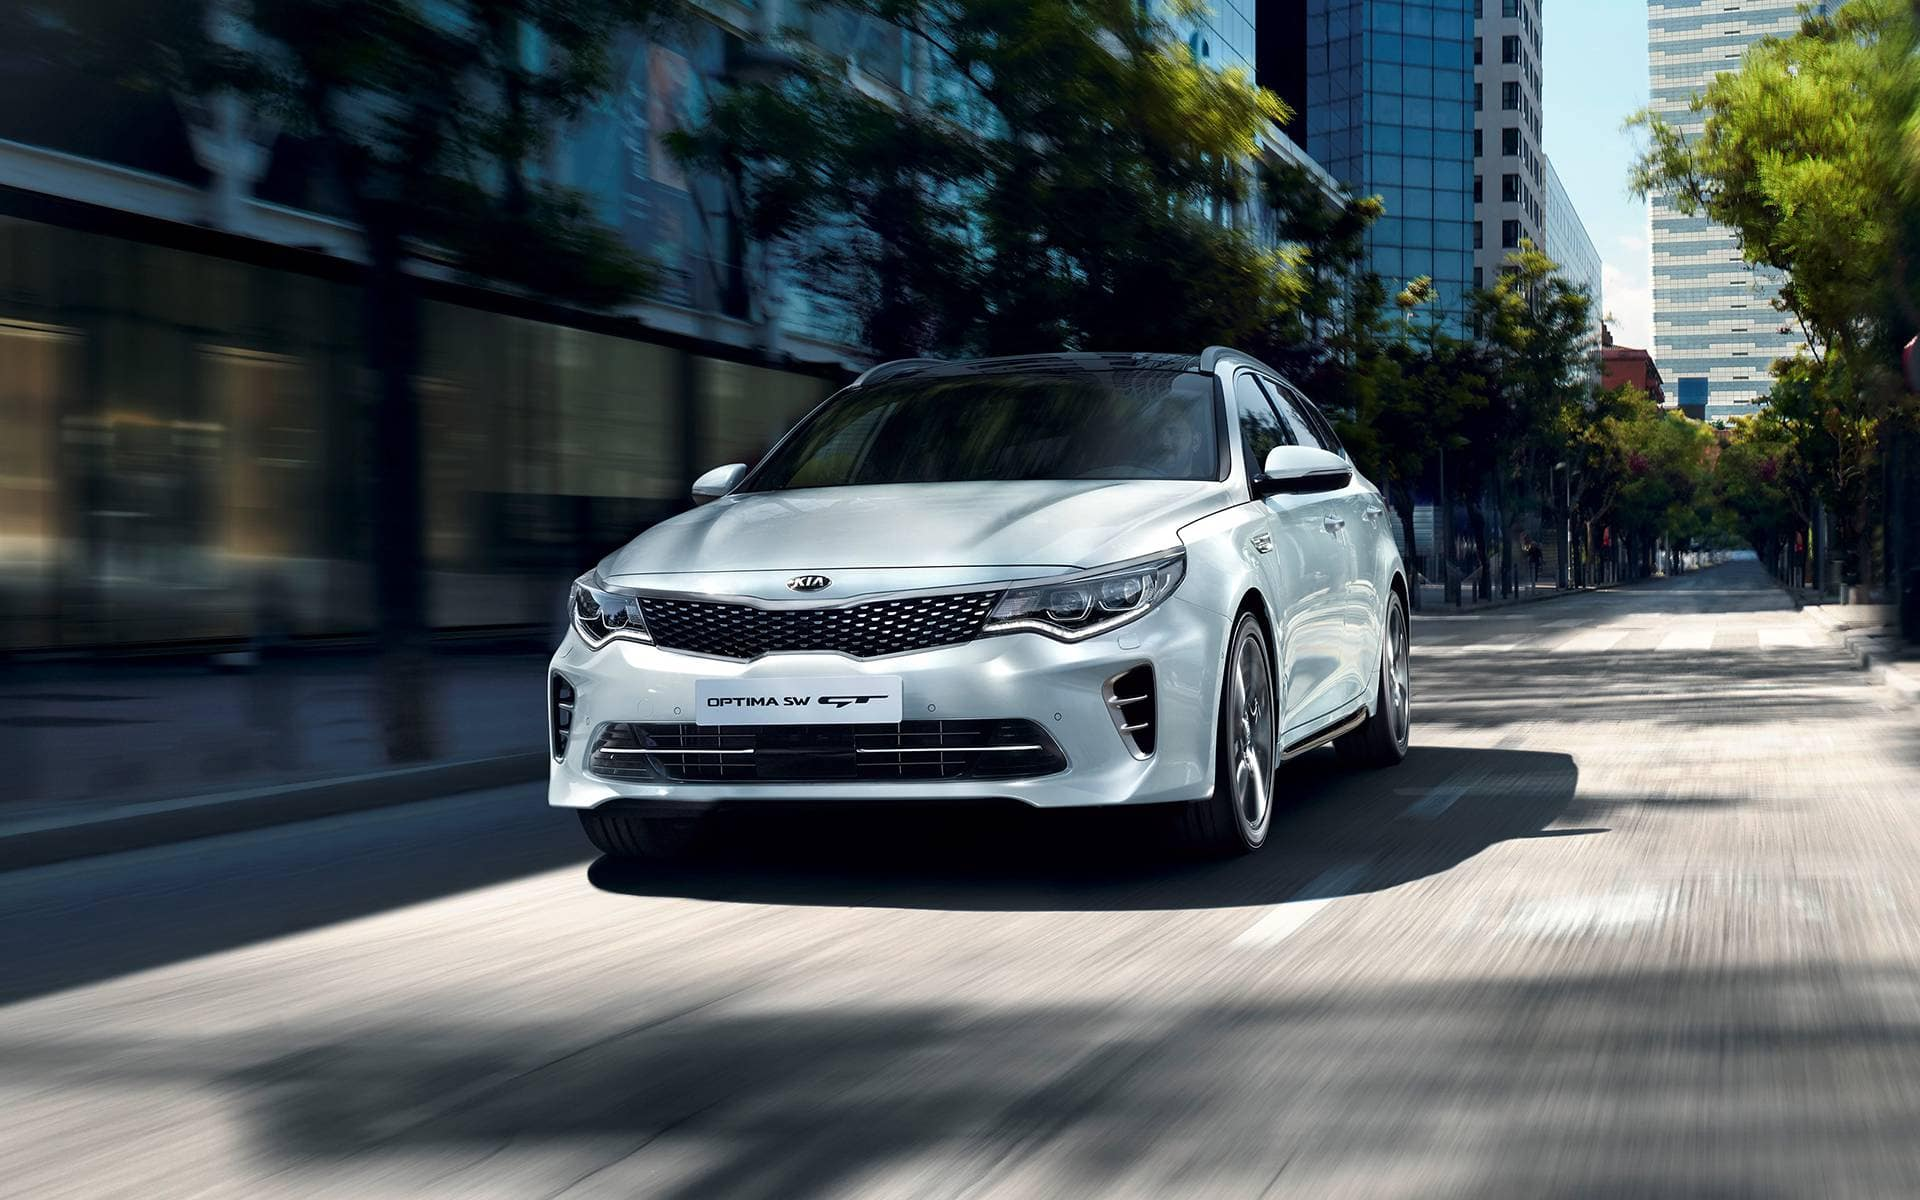 Kia Optima SW GT Highlights